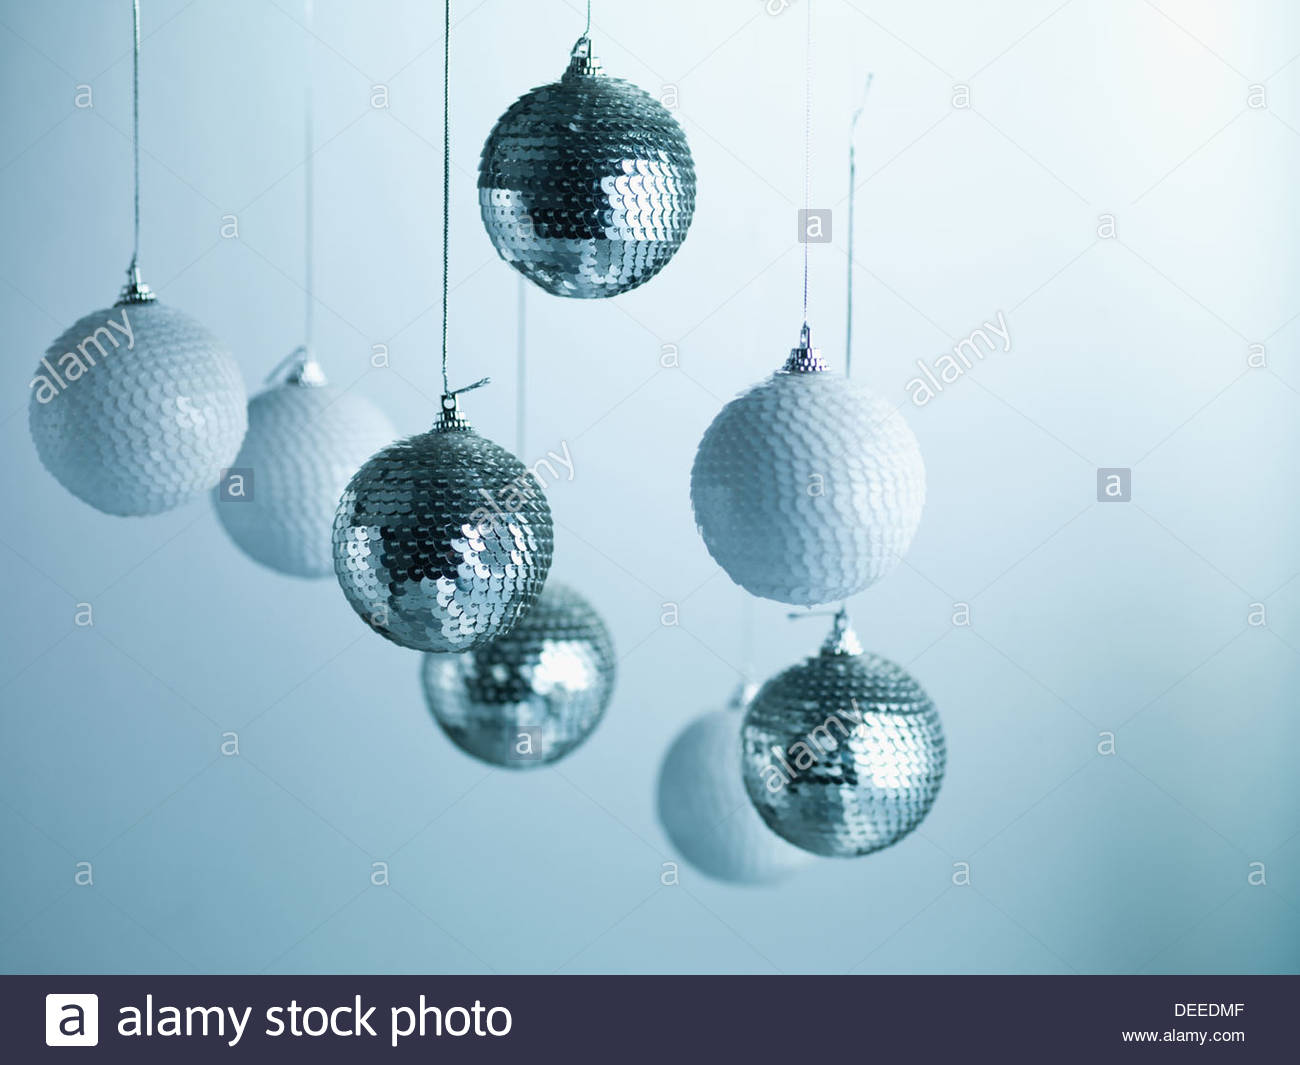 Christmas ornaments hanging from string - Stock Image